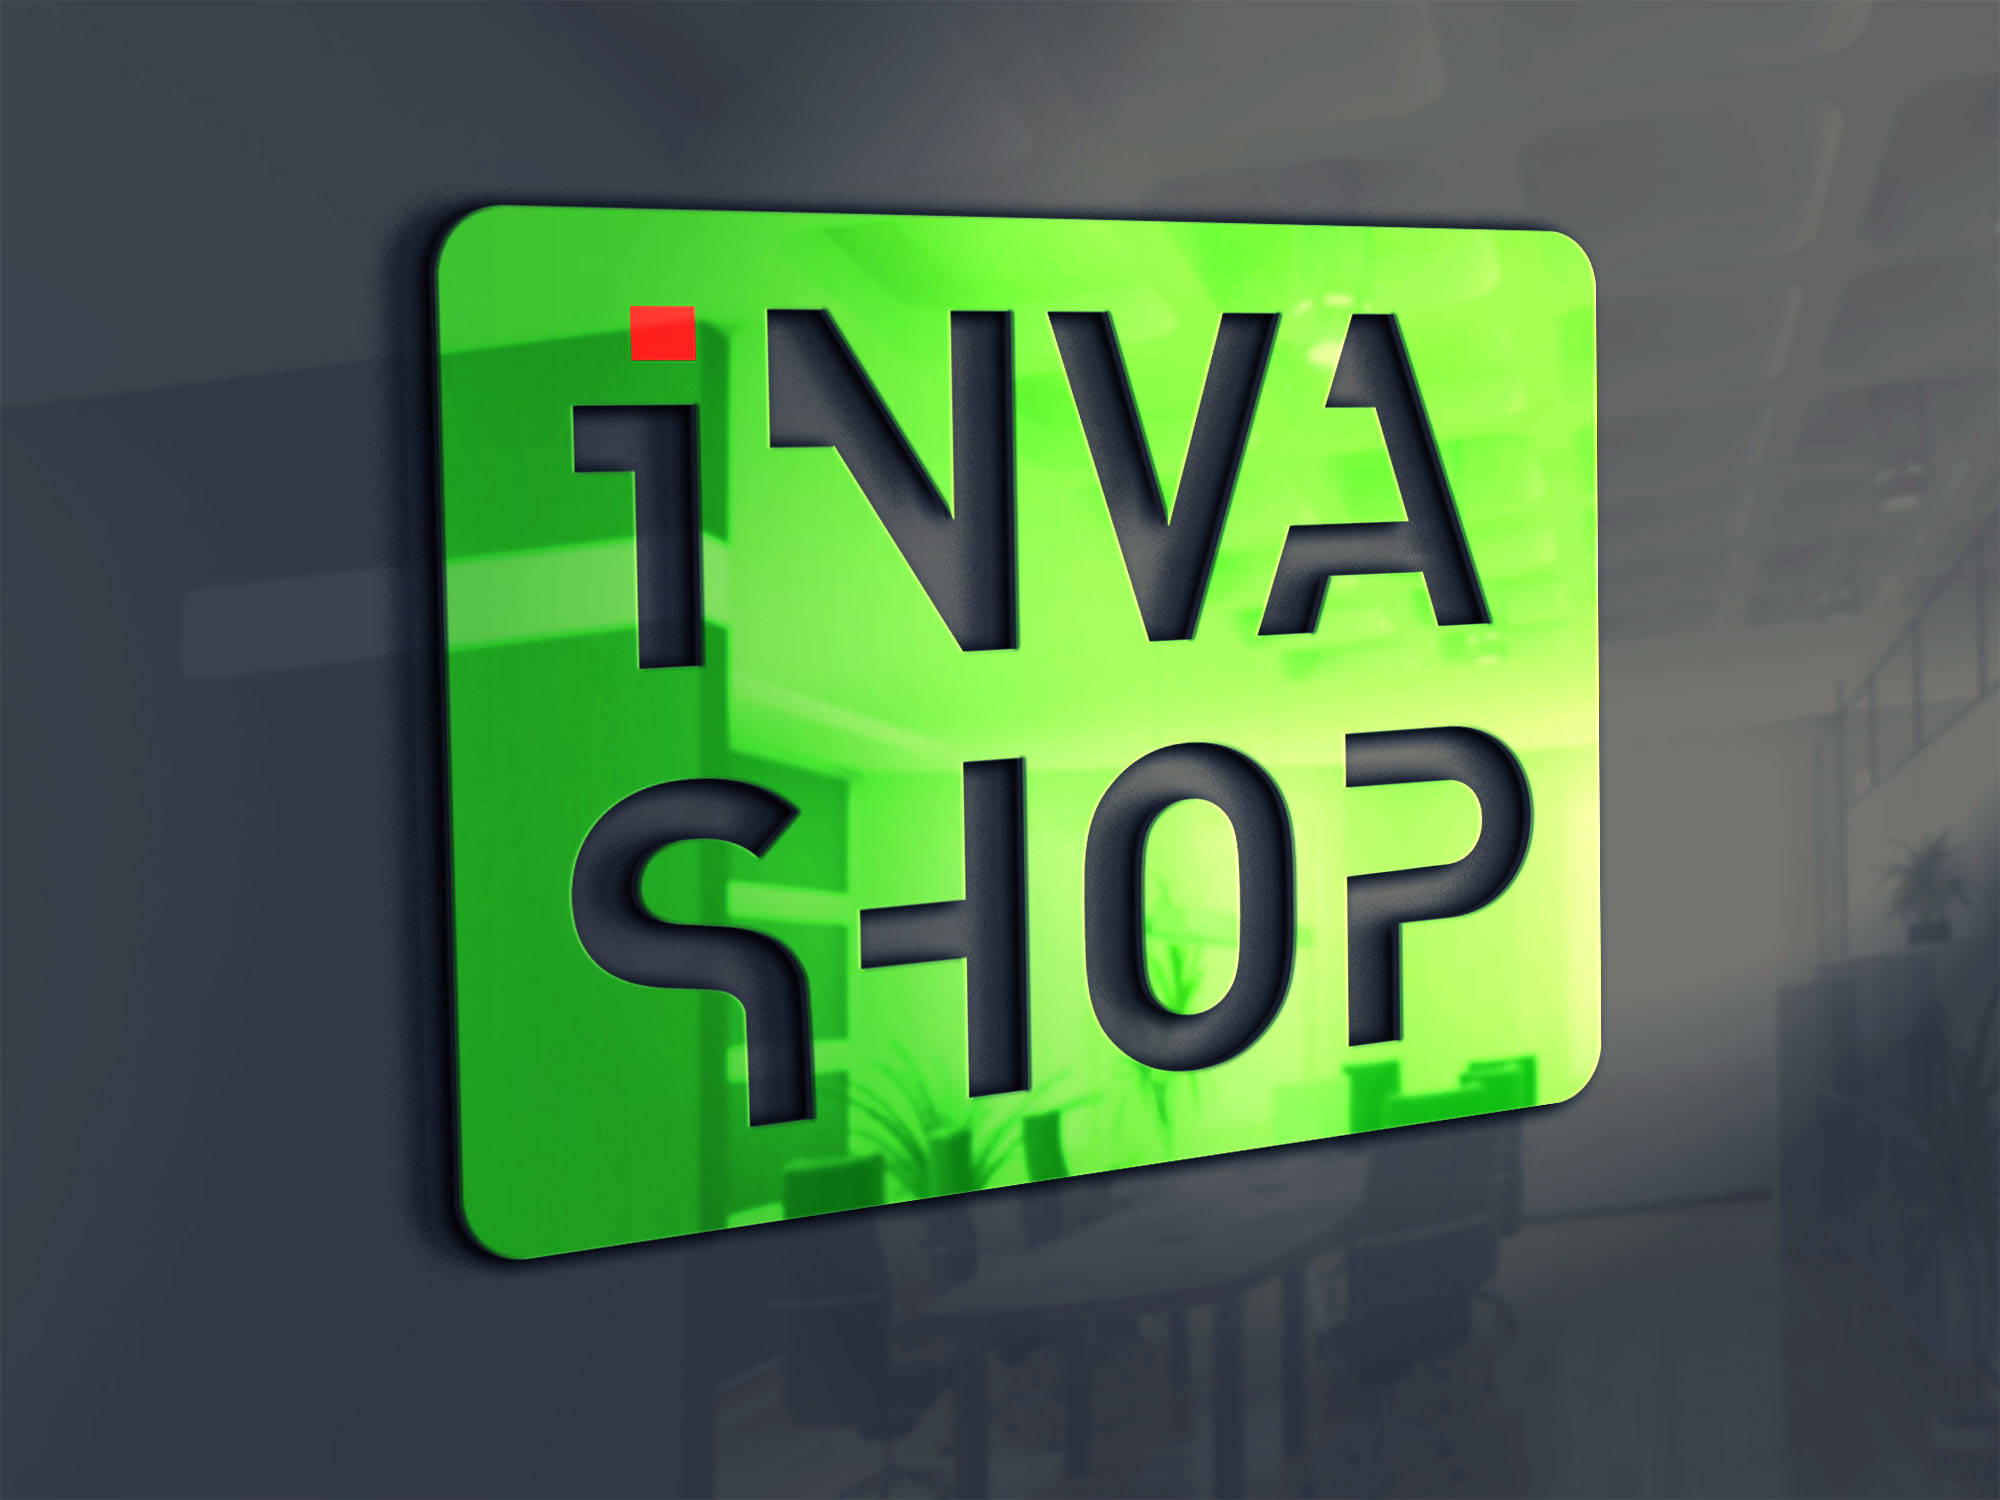 Invashop 03